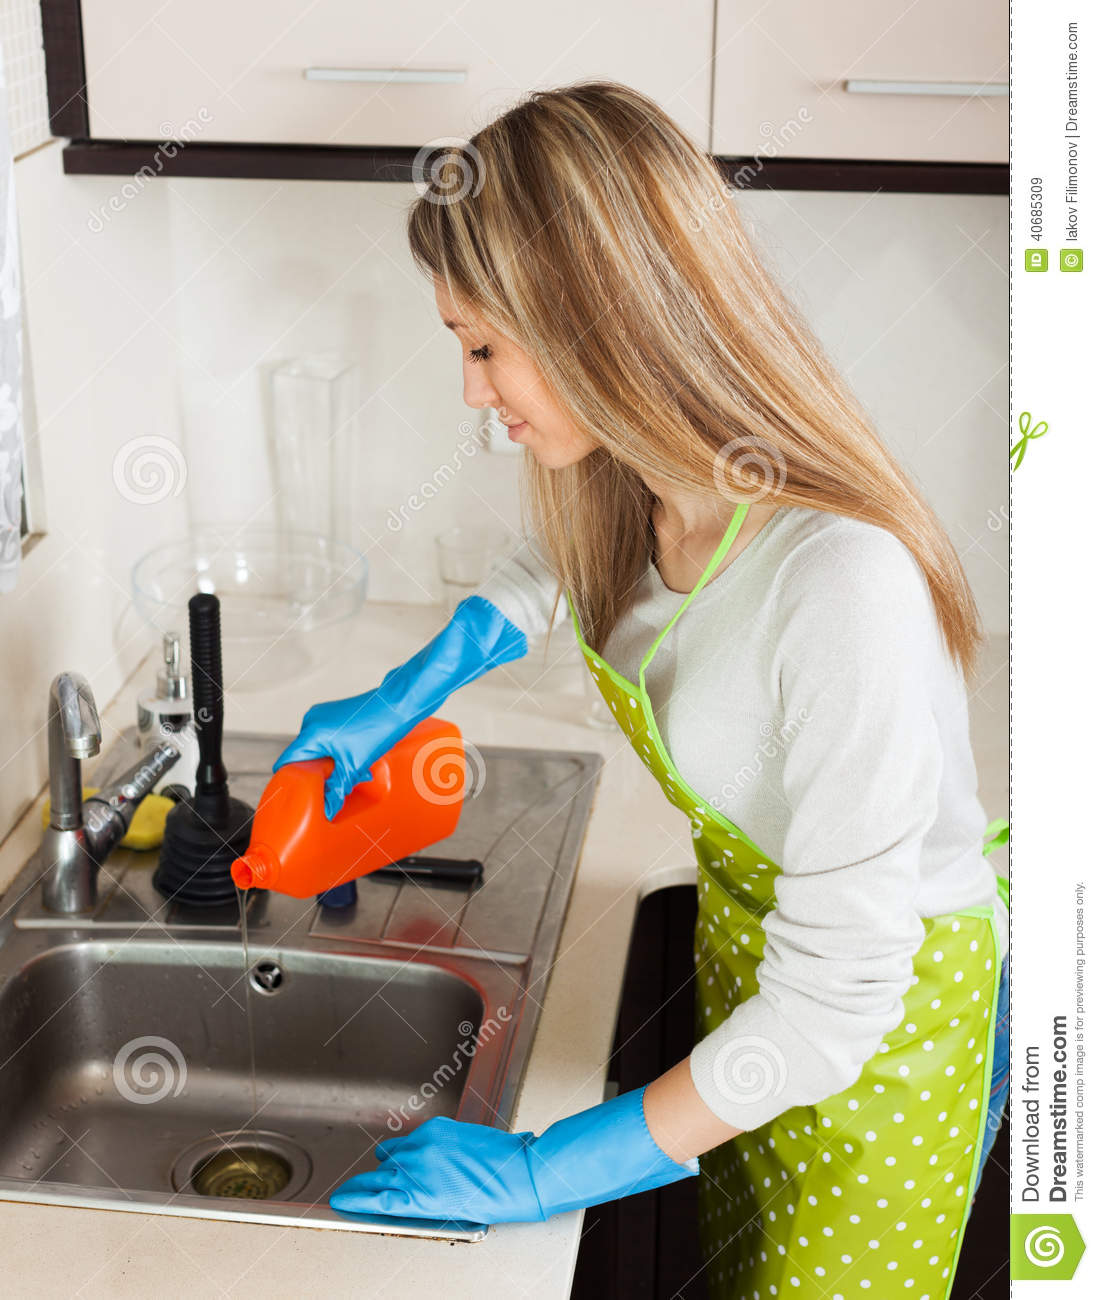 how to clean pipes in house